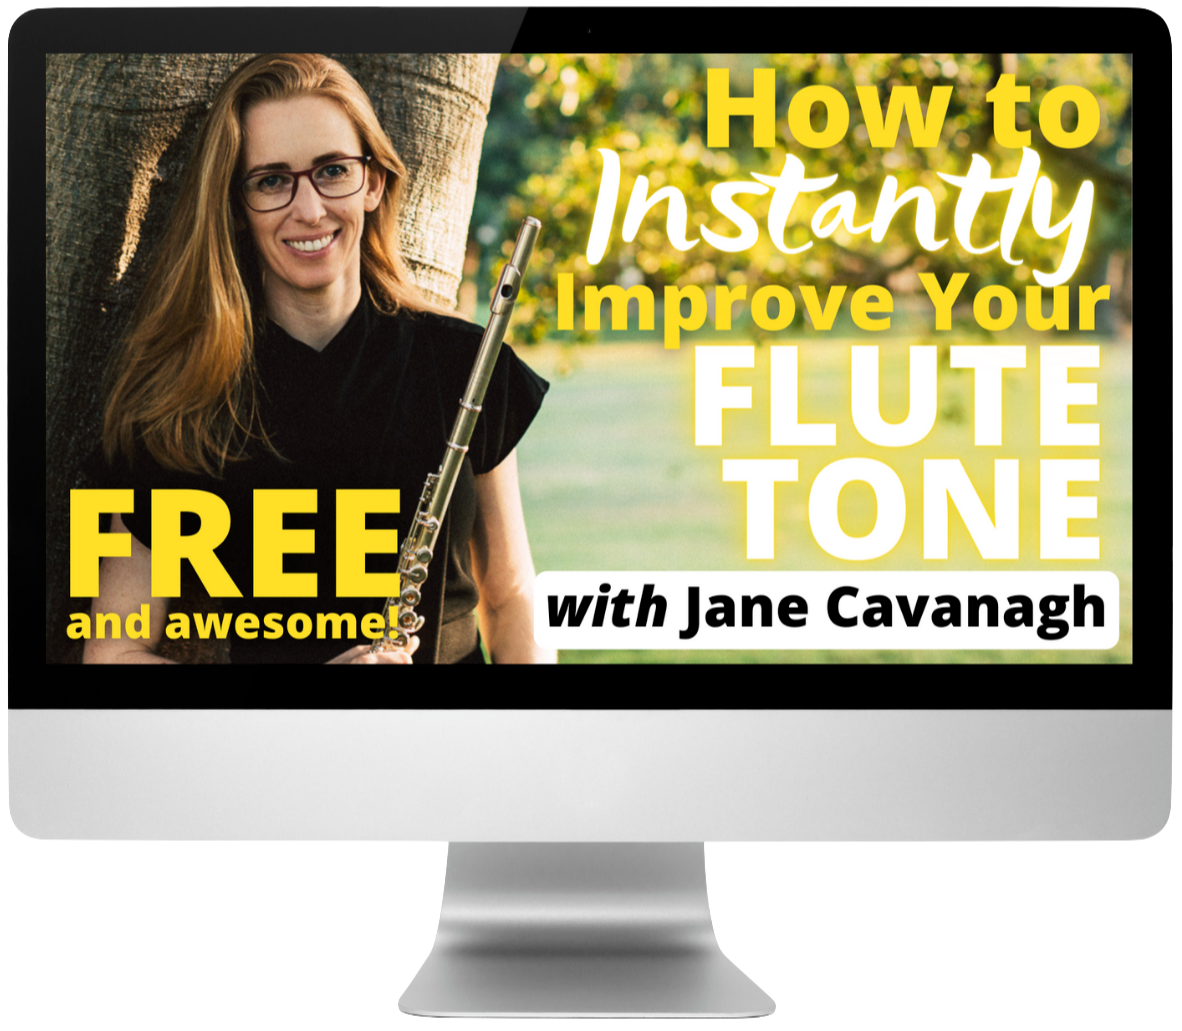 Instantly improve your flute tone